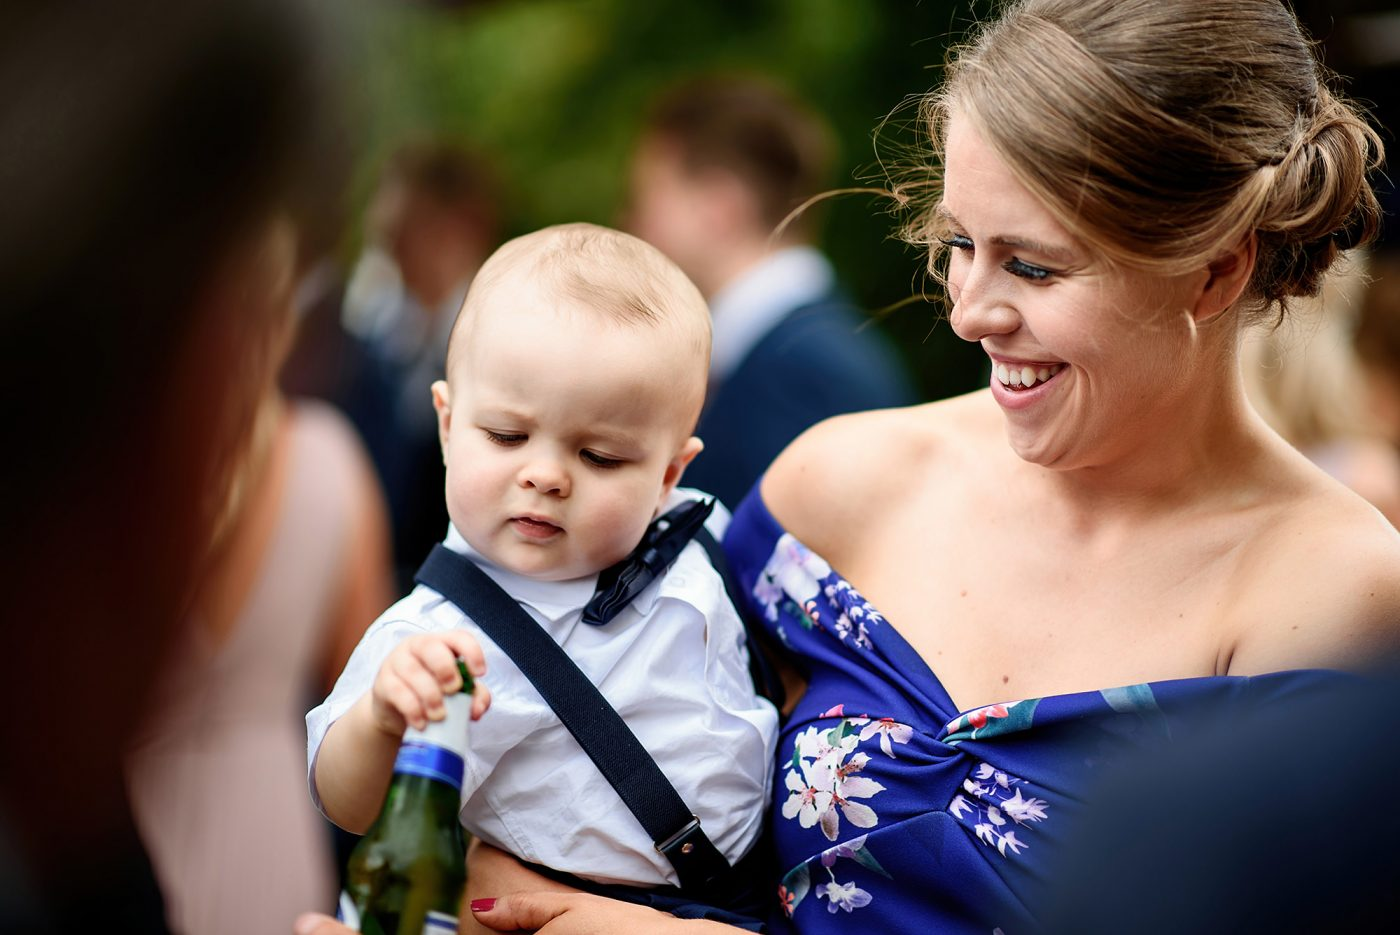 baby poking a beer bottle